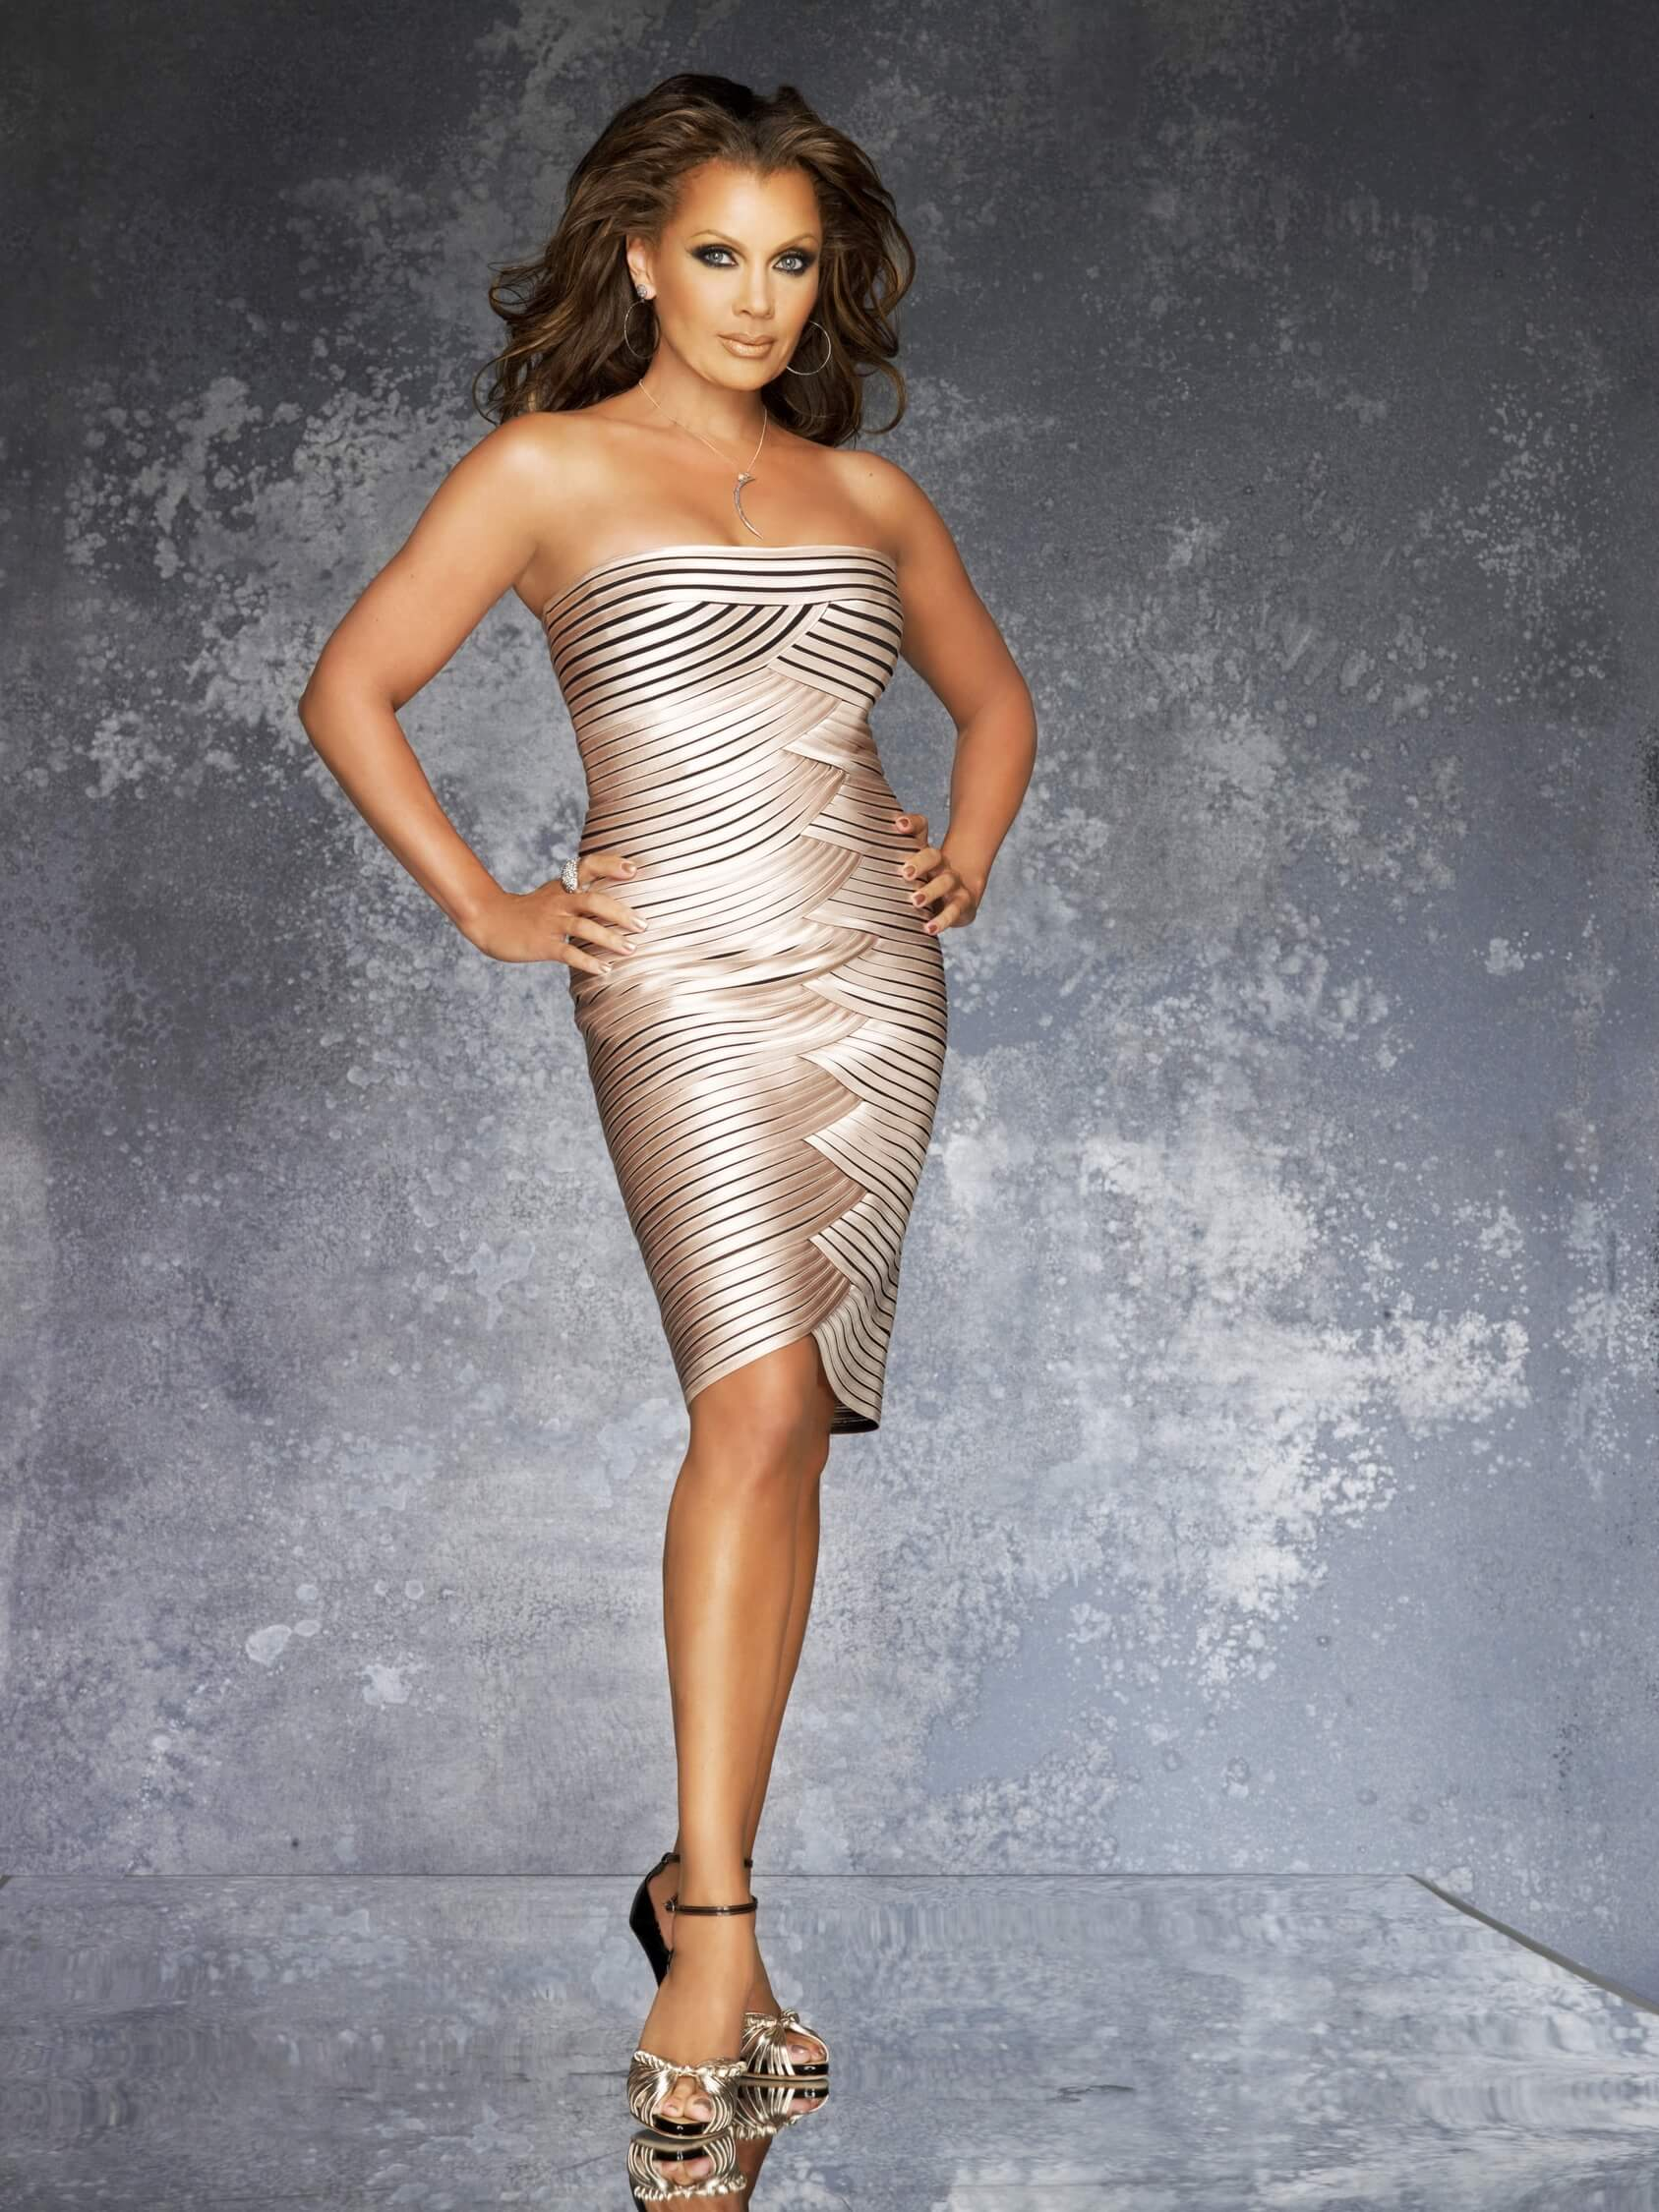 60+ Hot Pictures Of Vanessa Williams Will Make You Her